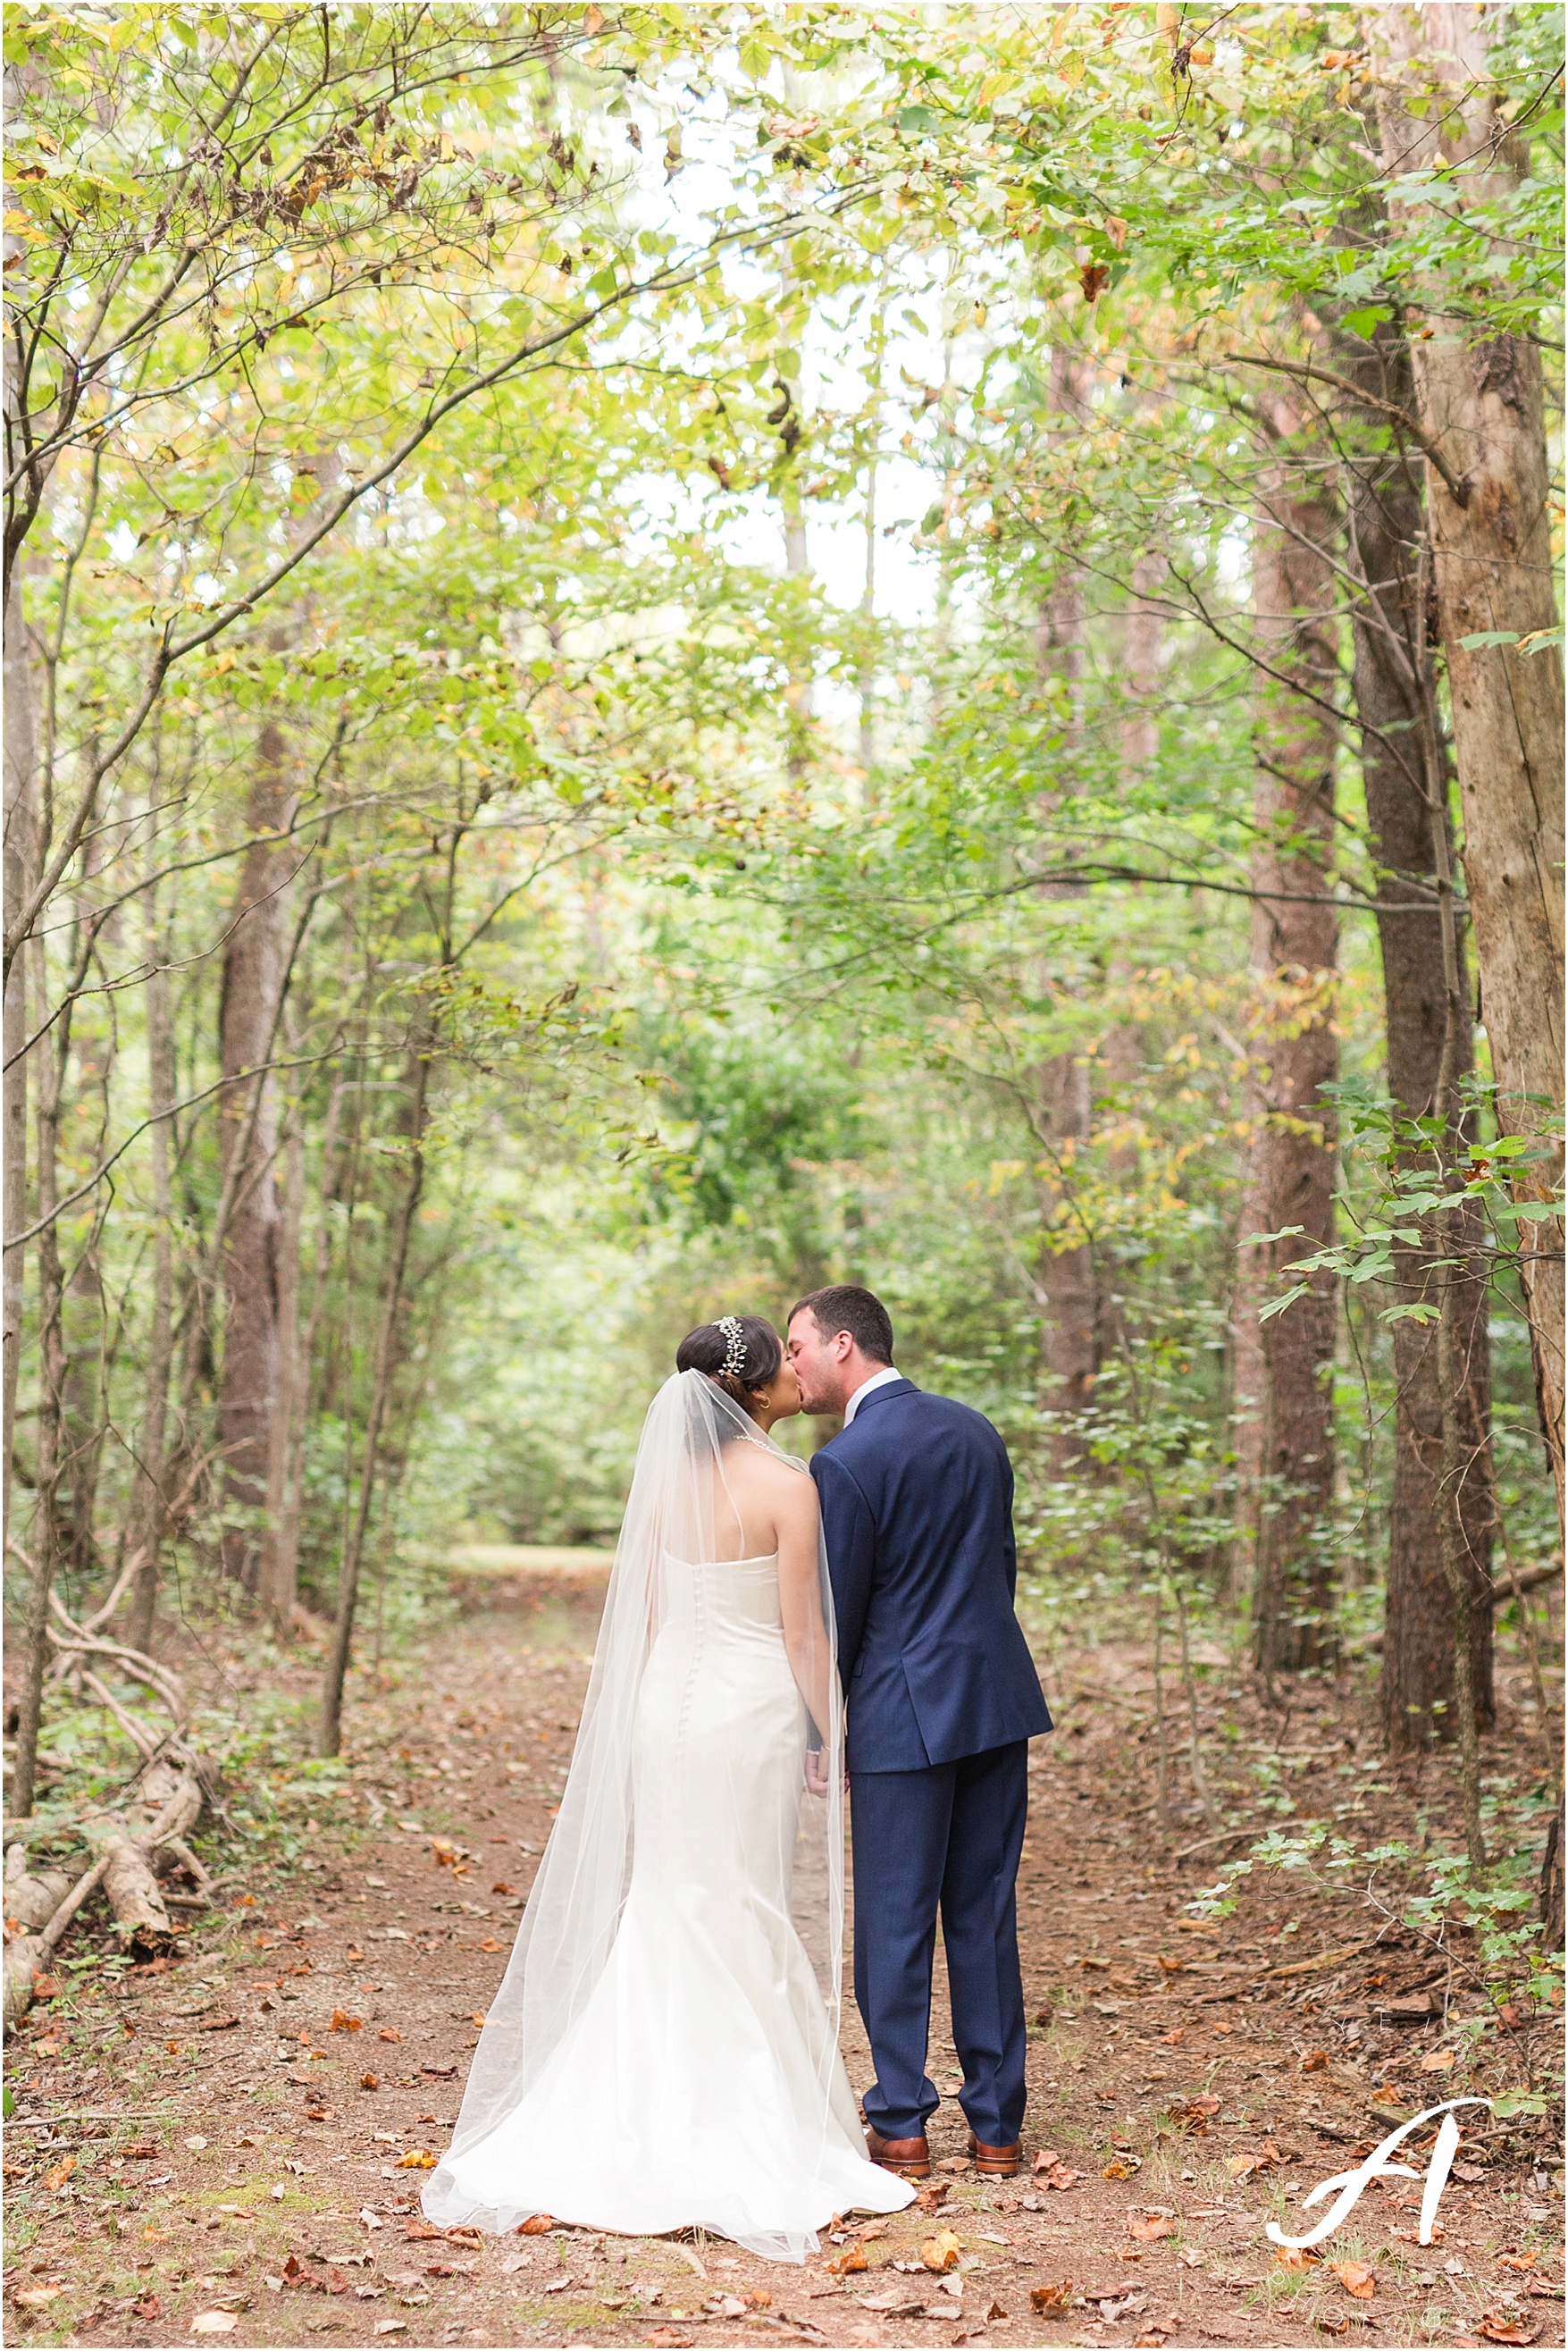 Charlottesville Wedding Photographer || Backyard Wedding in Central Virginia || Ashley Eiban Photography || www.ashleyeiban.com